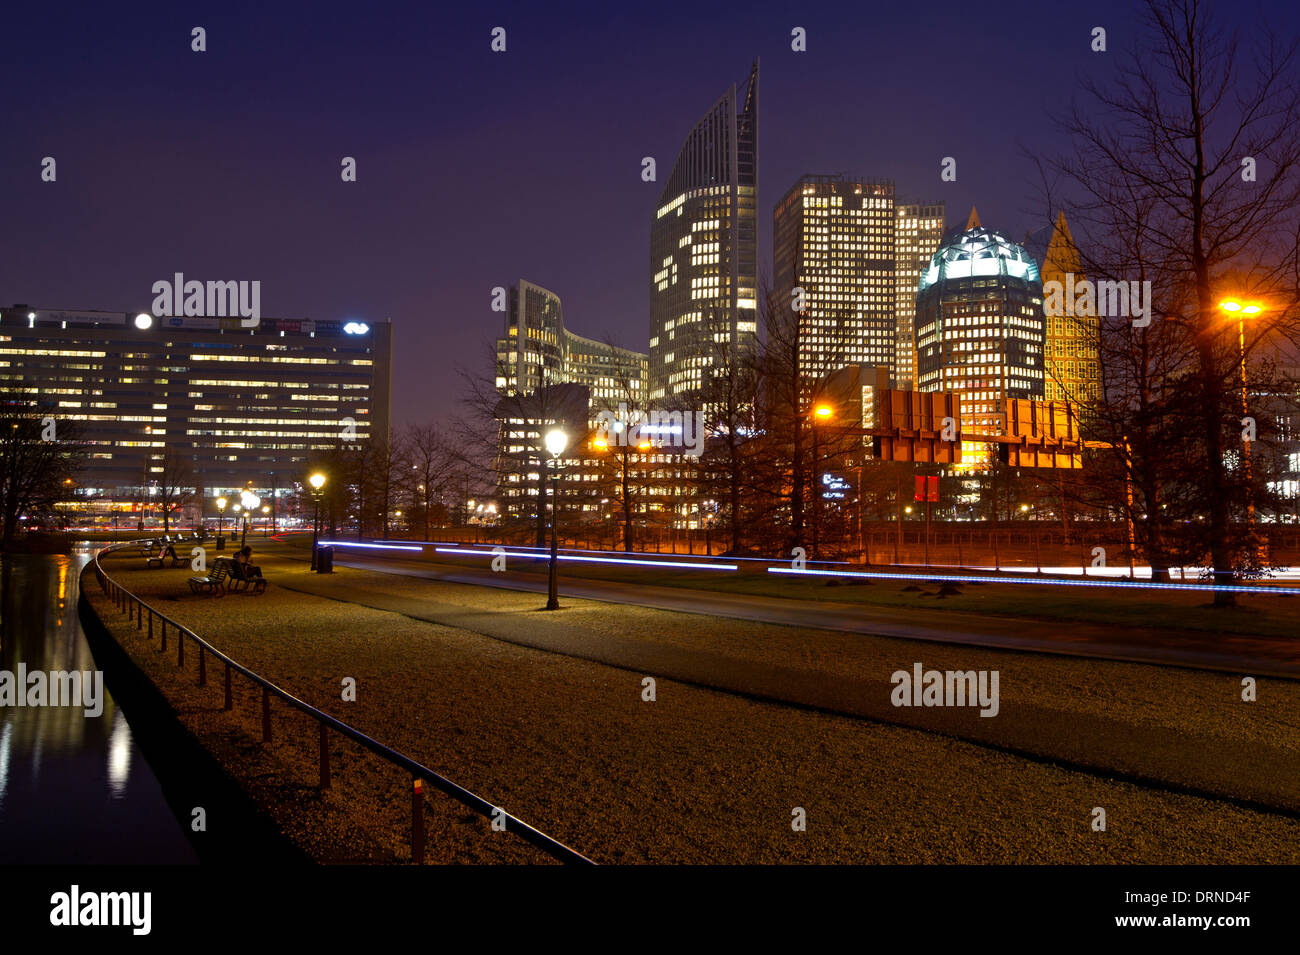 The Netherlands. The Hague by night. Government buildings Stock Photo